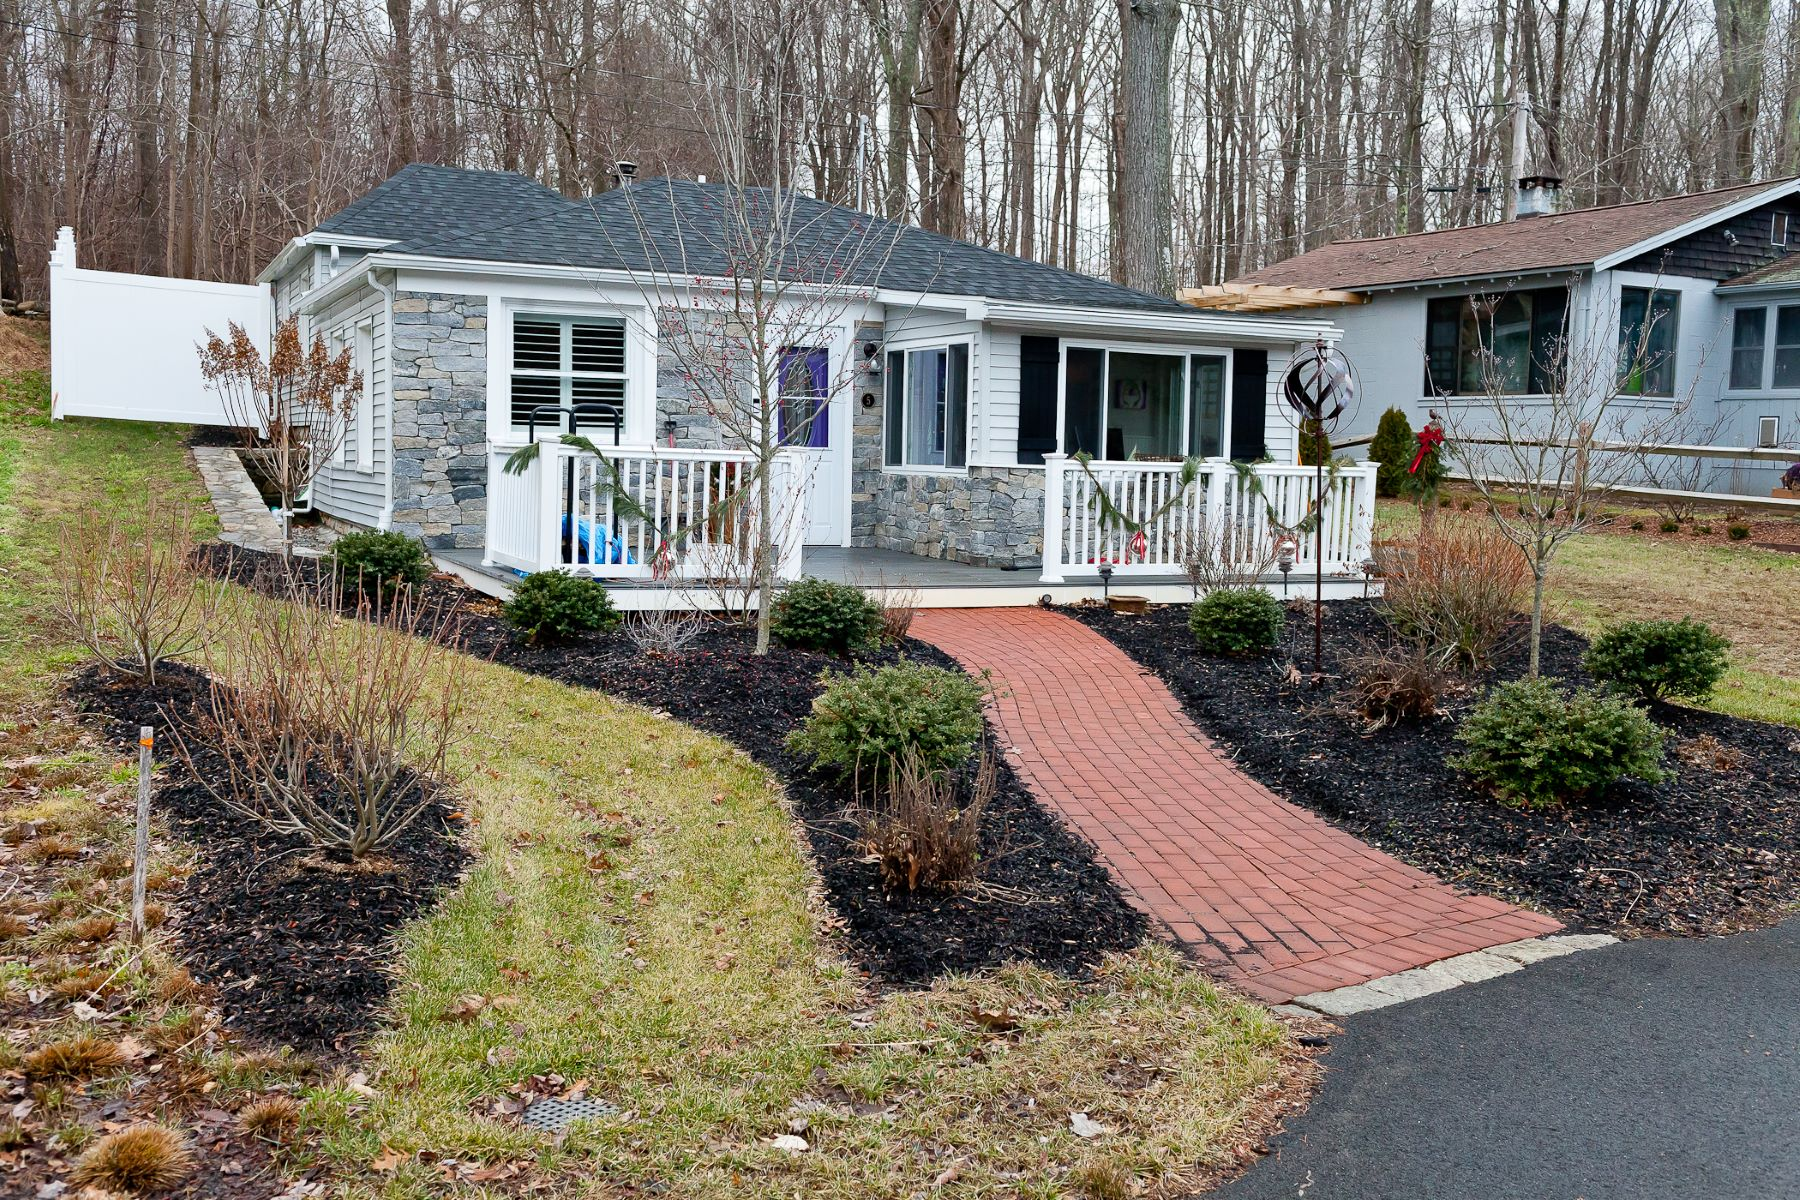 Single Family Homes for Active at Charming Bungalow on Star Lake 538 Winthrop Road 5 Deep River, Connecticut 06417 United States